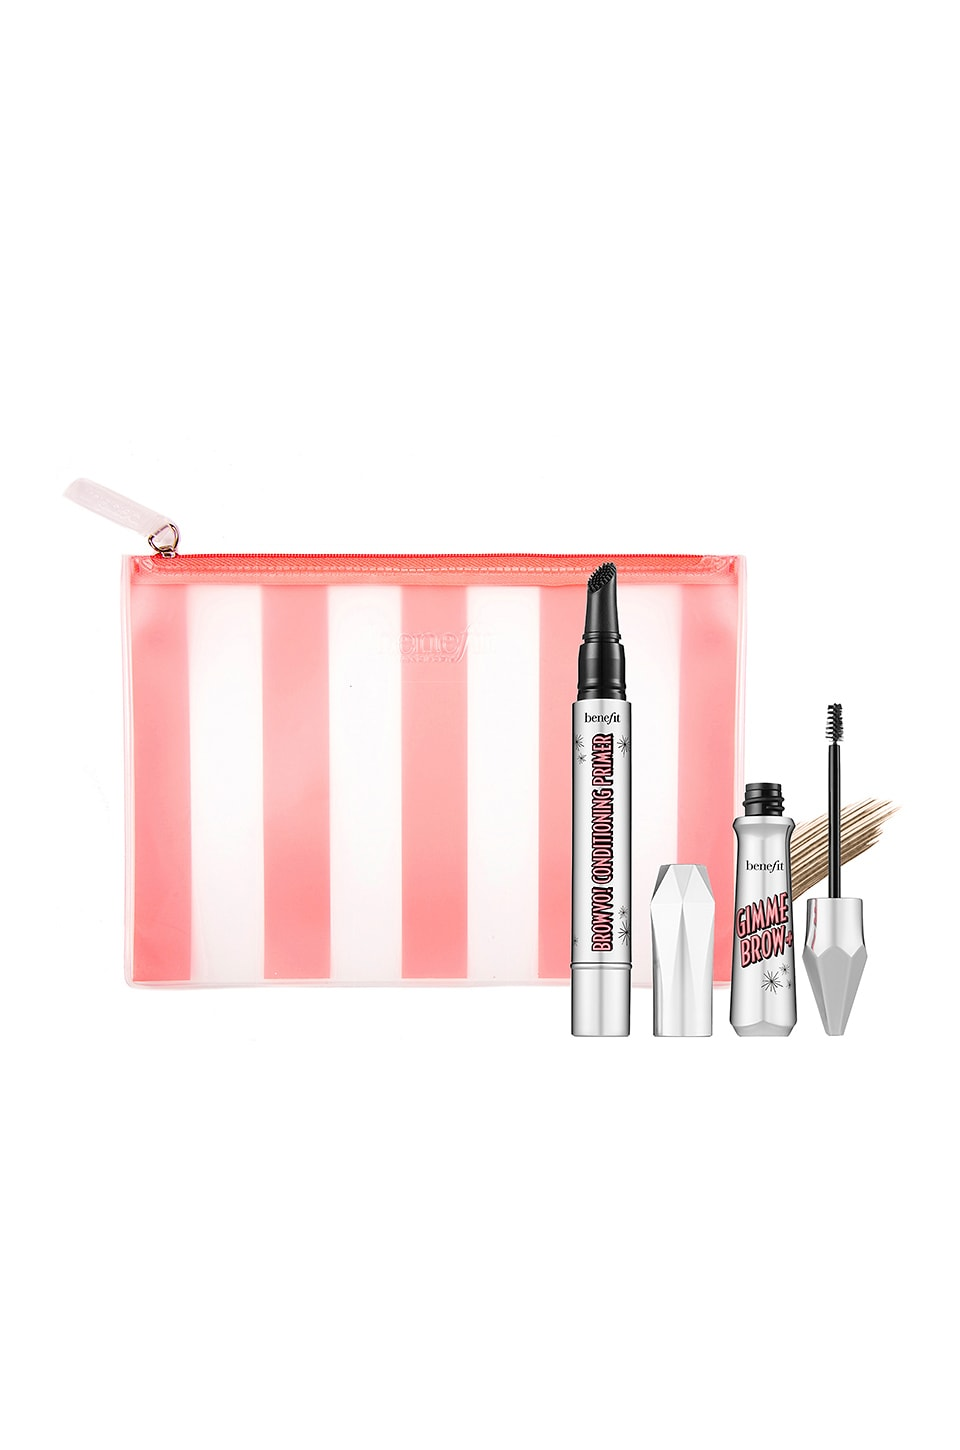 BENEFIT COSMETICS GIMME FULL BROWS! KIT